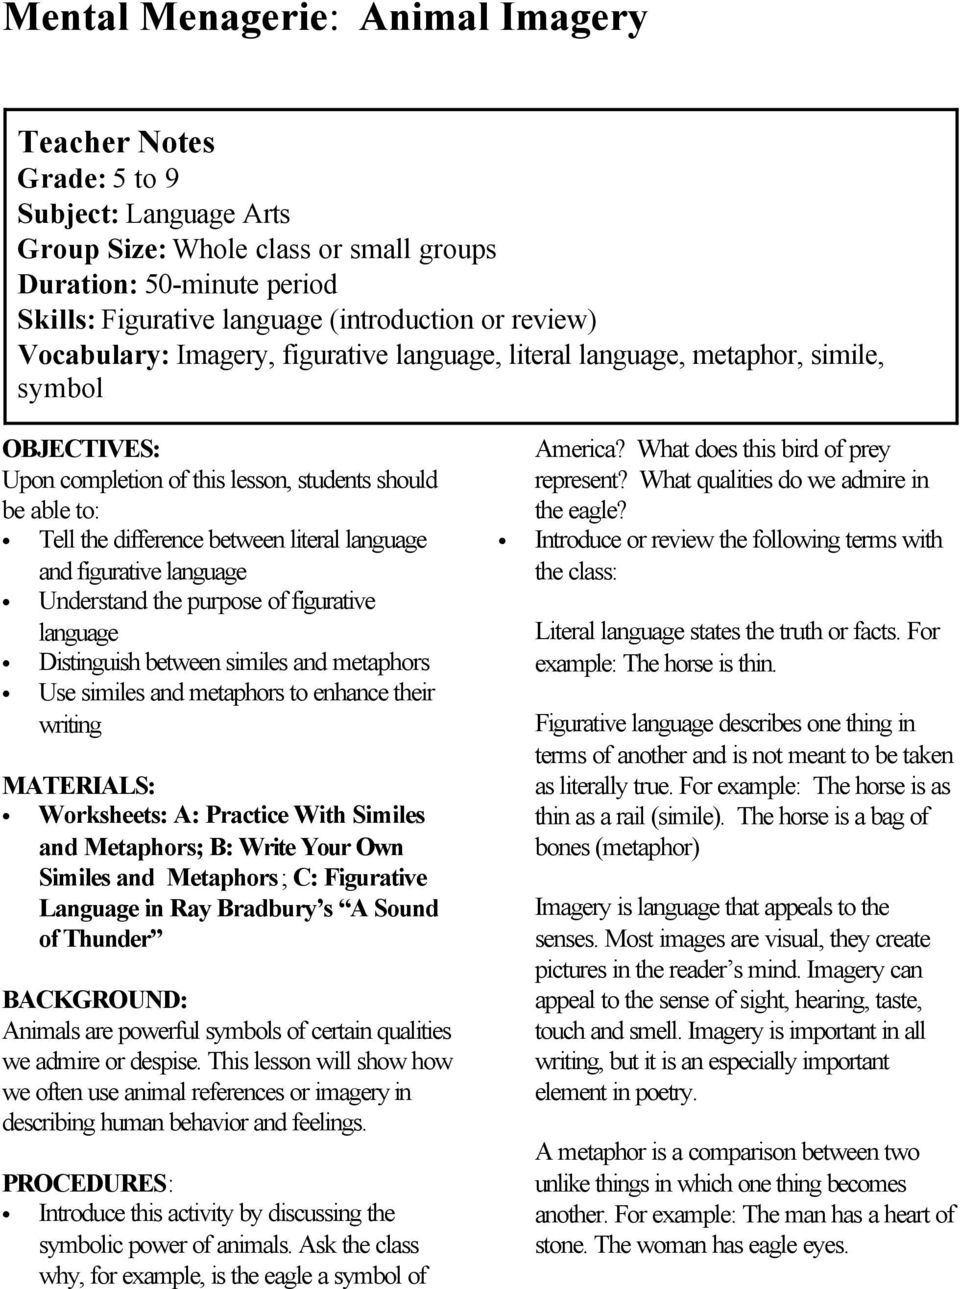 worksheet Figurative Language Review Worksheet mental menagerie animal imagery pdf literal language and figurative understand the purpose of distinguish between similes metaphors